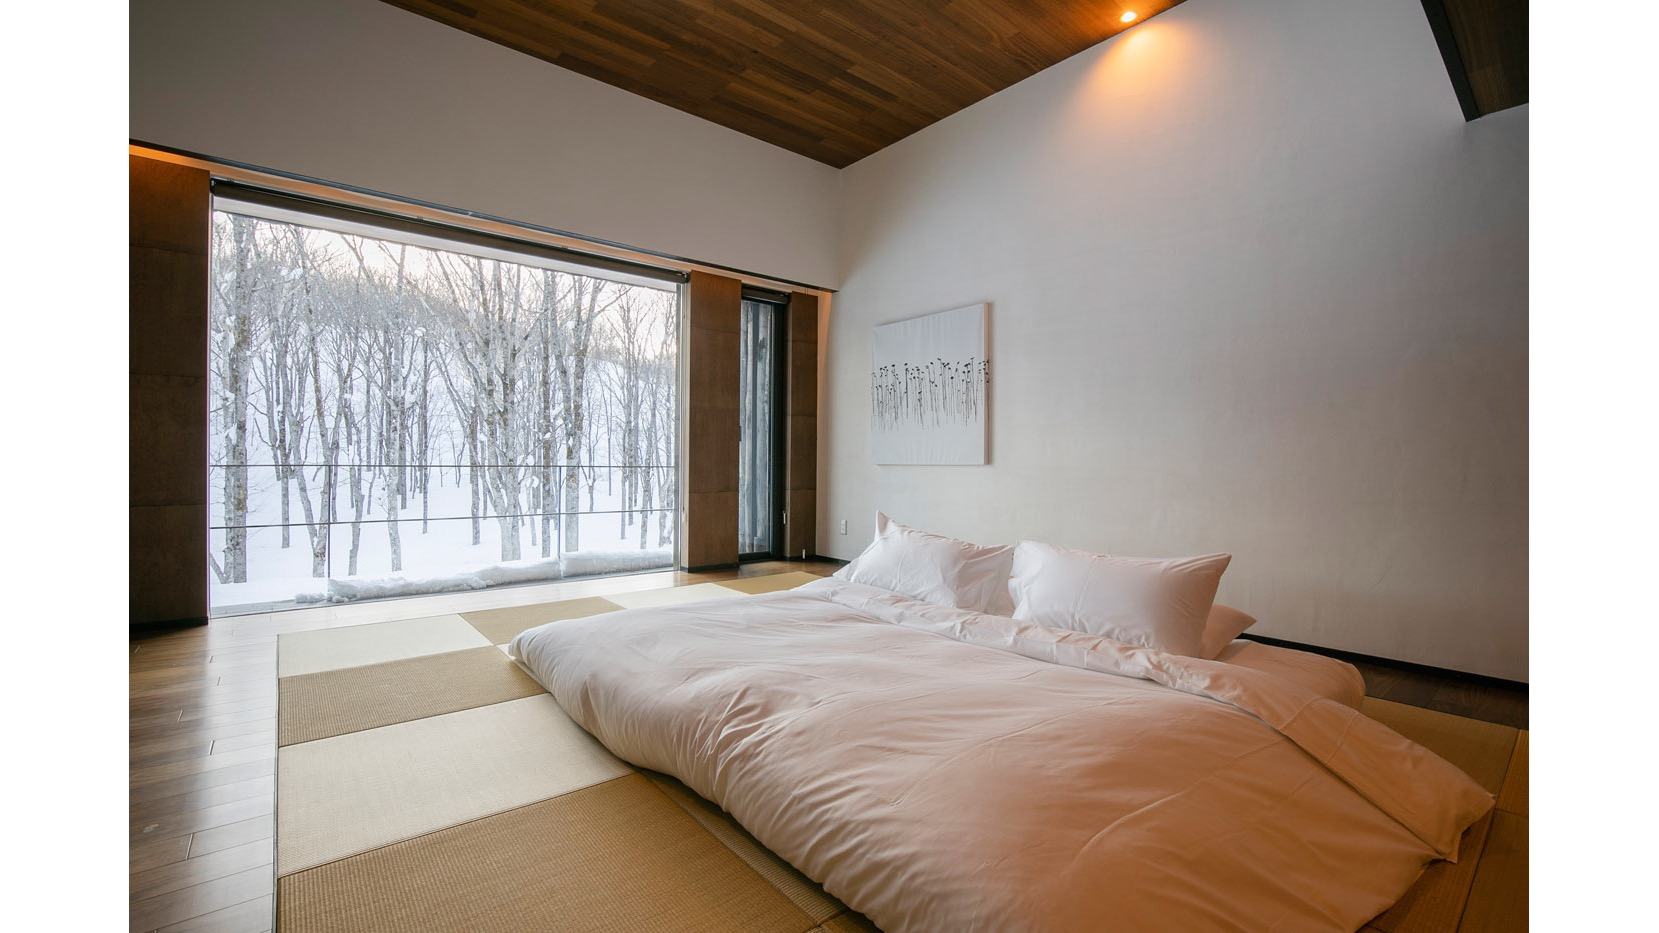 """The guest room. Zaborin's philosophy is inspired by Zen teachings, with the facility aiming to be a place where you can """"stare at the heart, free of all thoughts and desires"""""""